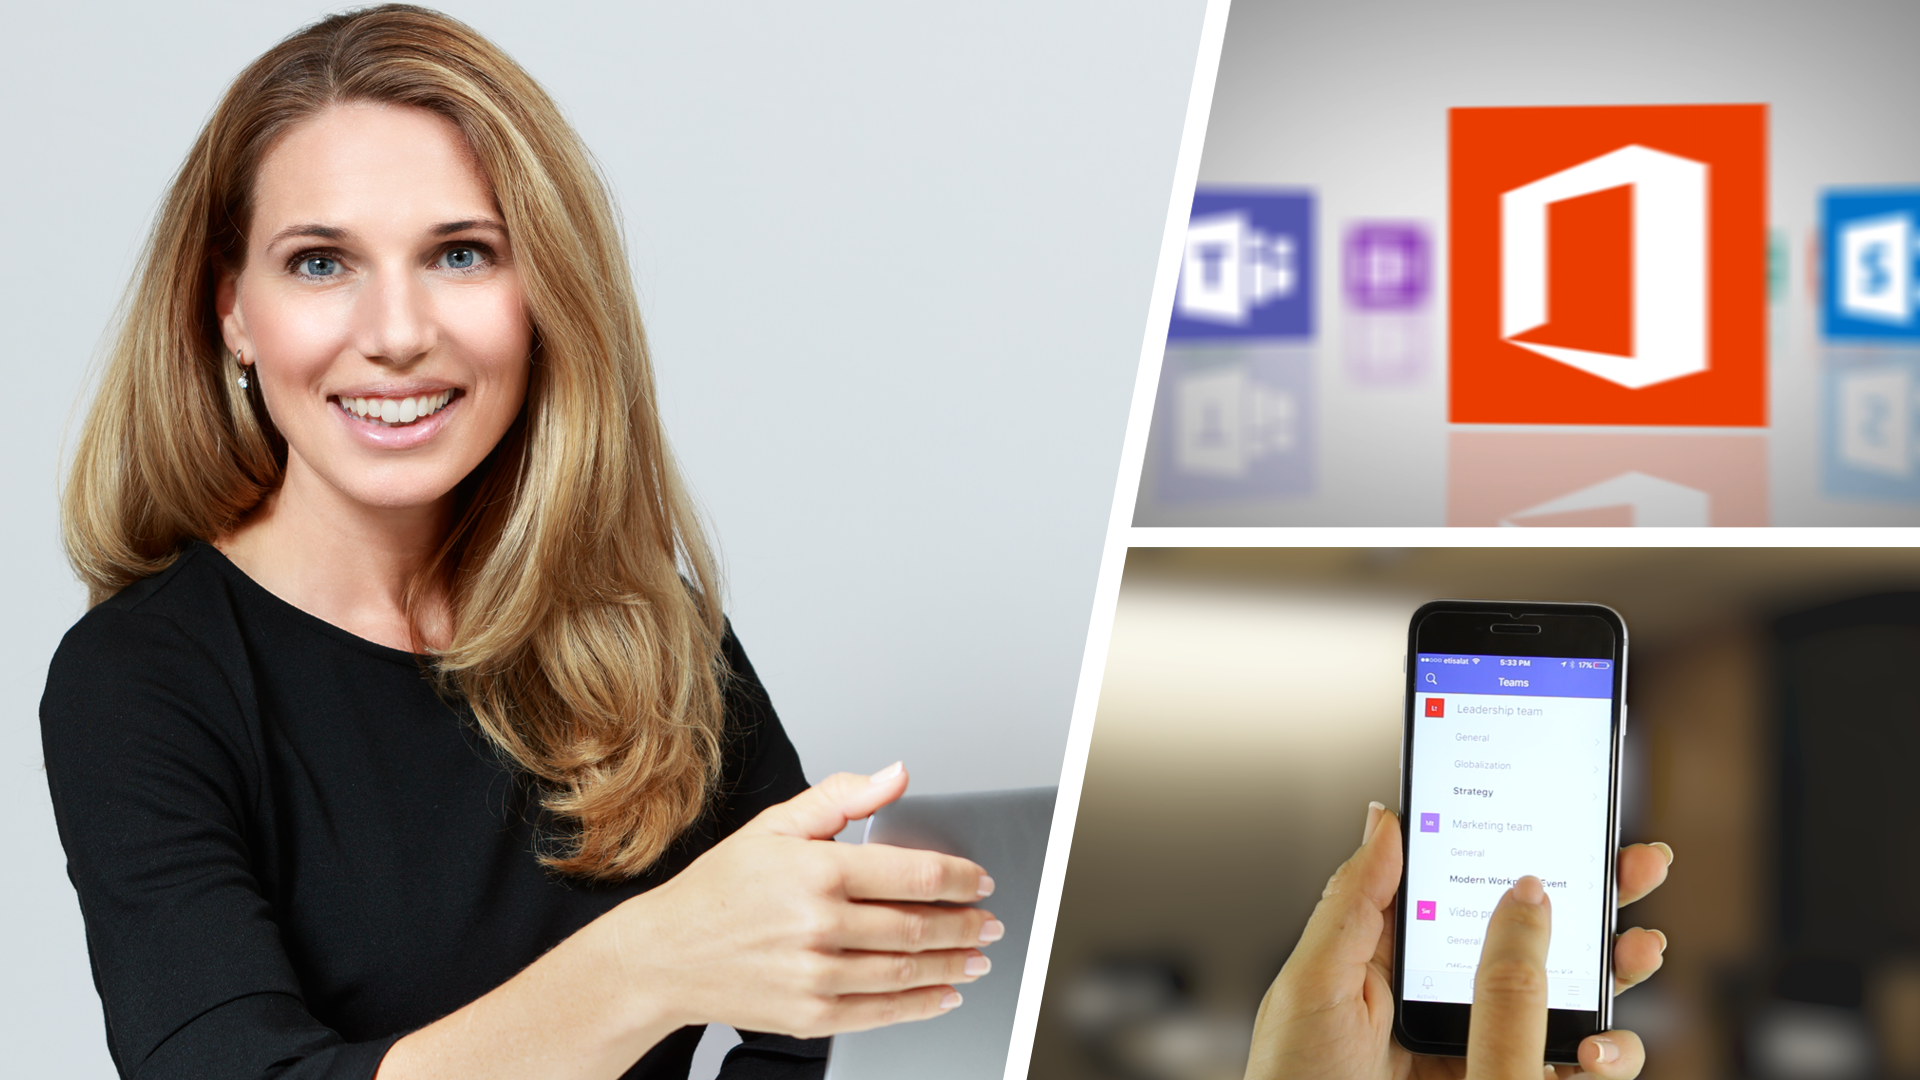 The ultimate real-life Office 365 productivity course